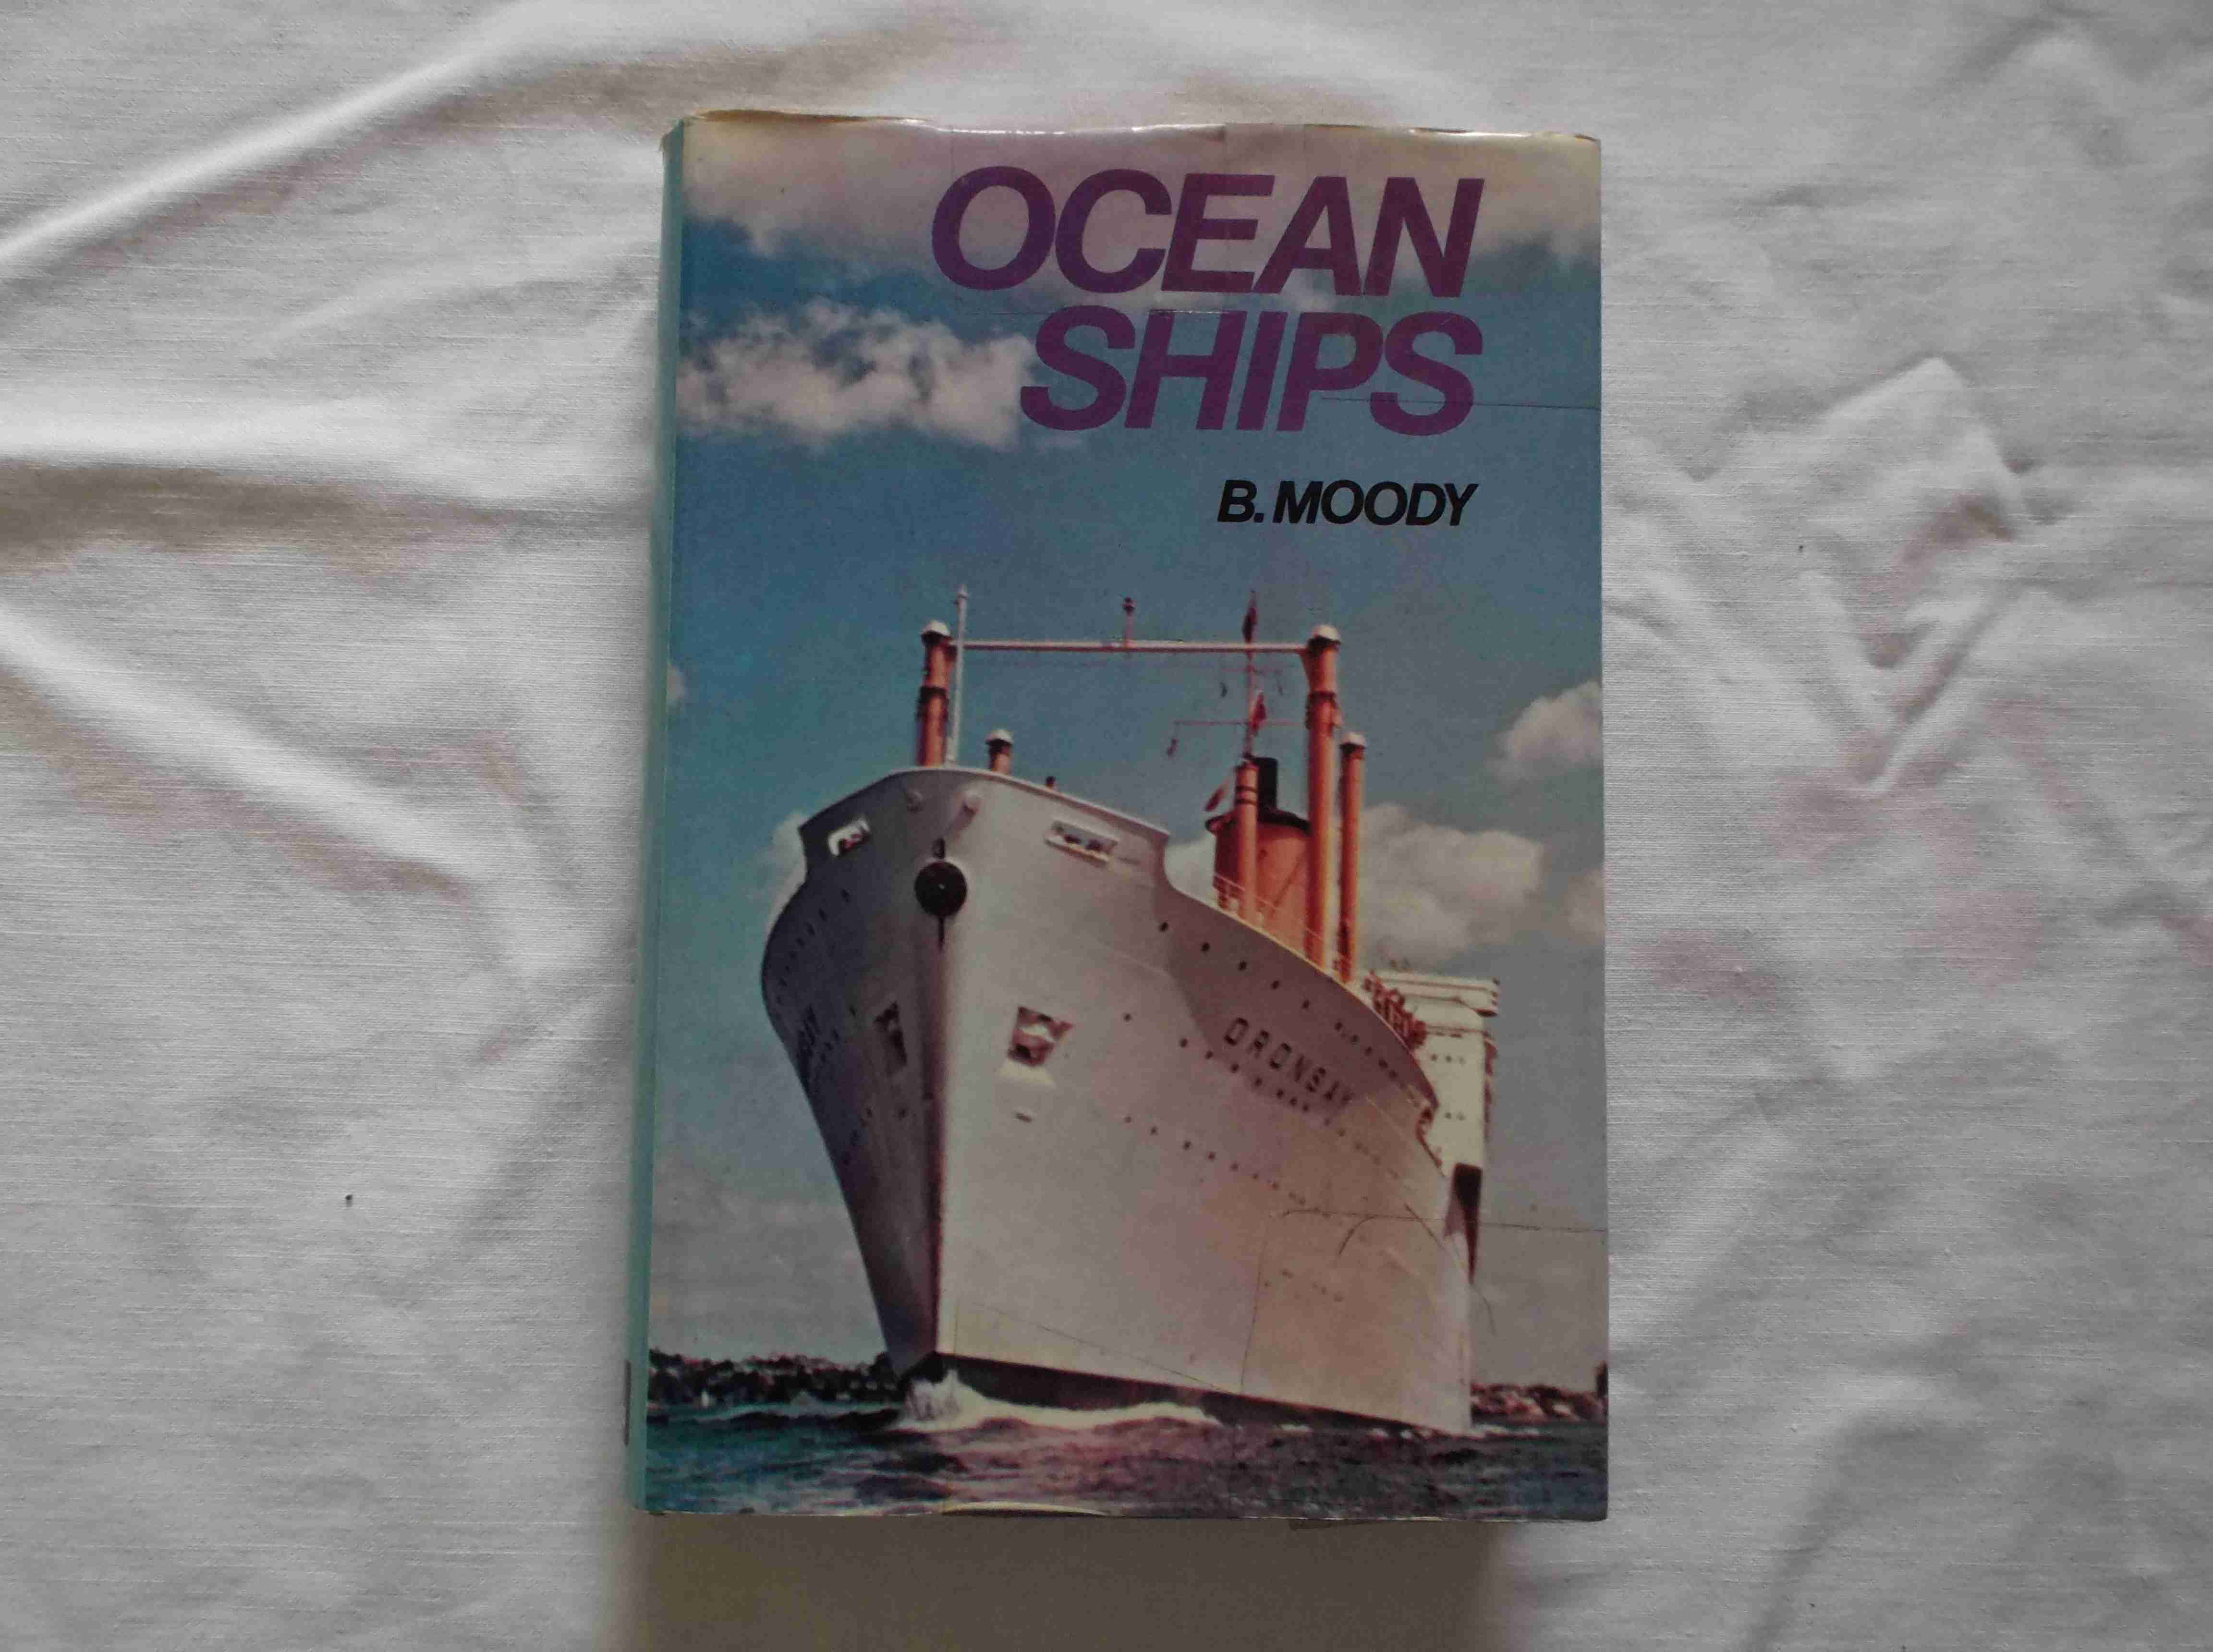 RARE MARITIME BOOK FROM THE 'OCEAN SHIPS' COLLECTION DATED 1971